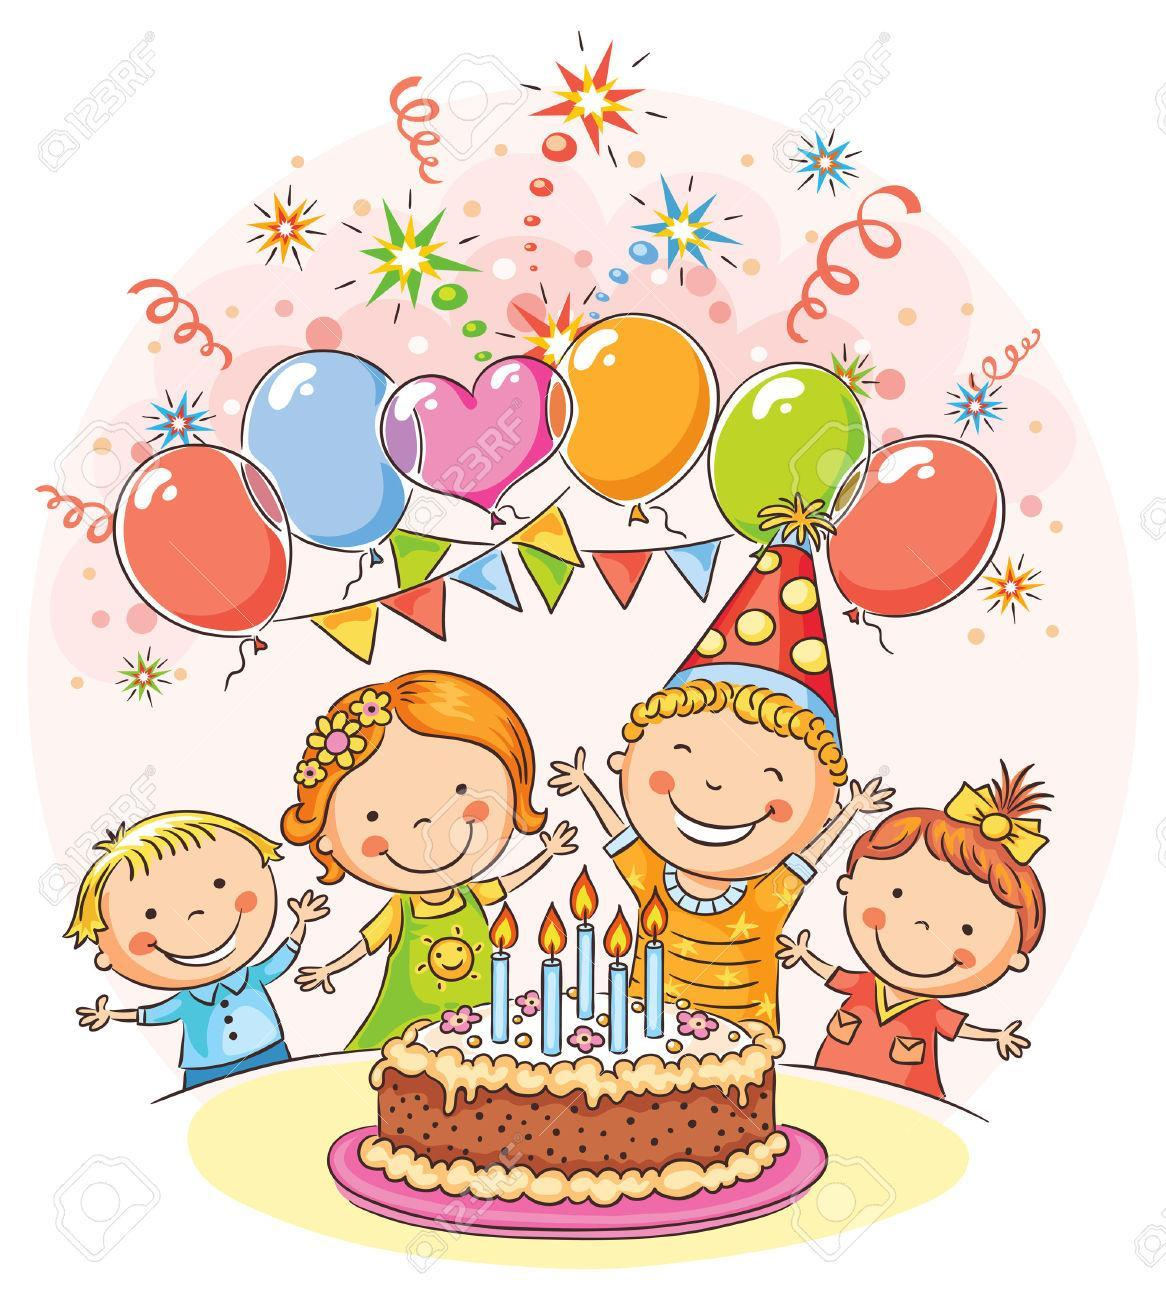 kids birthday clipart ; birthday-party-clipart-119957-9248578